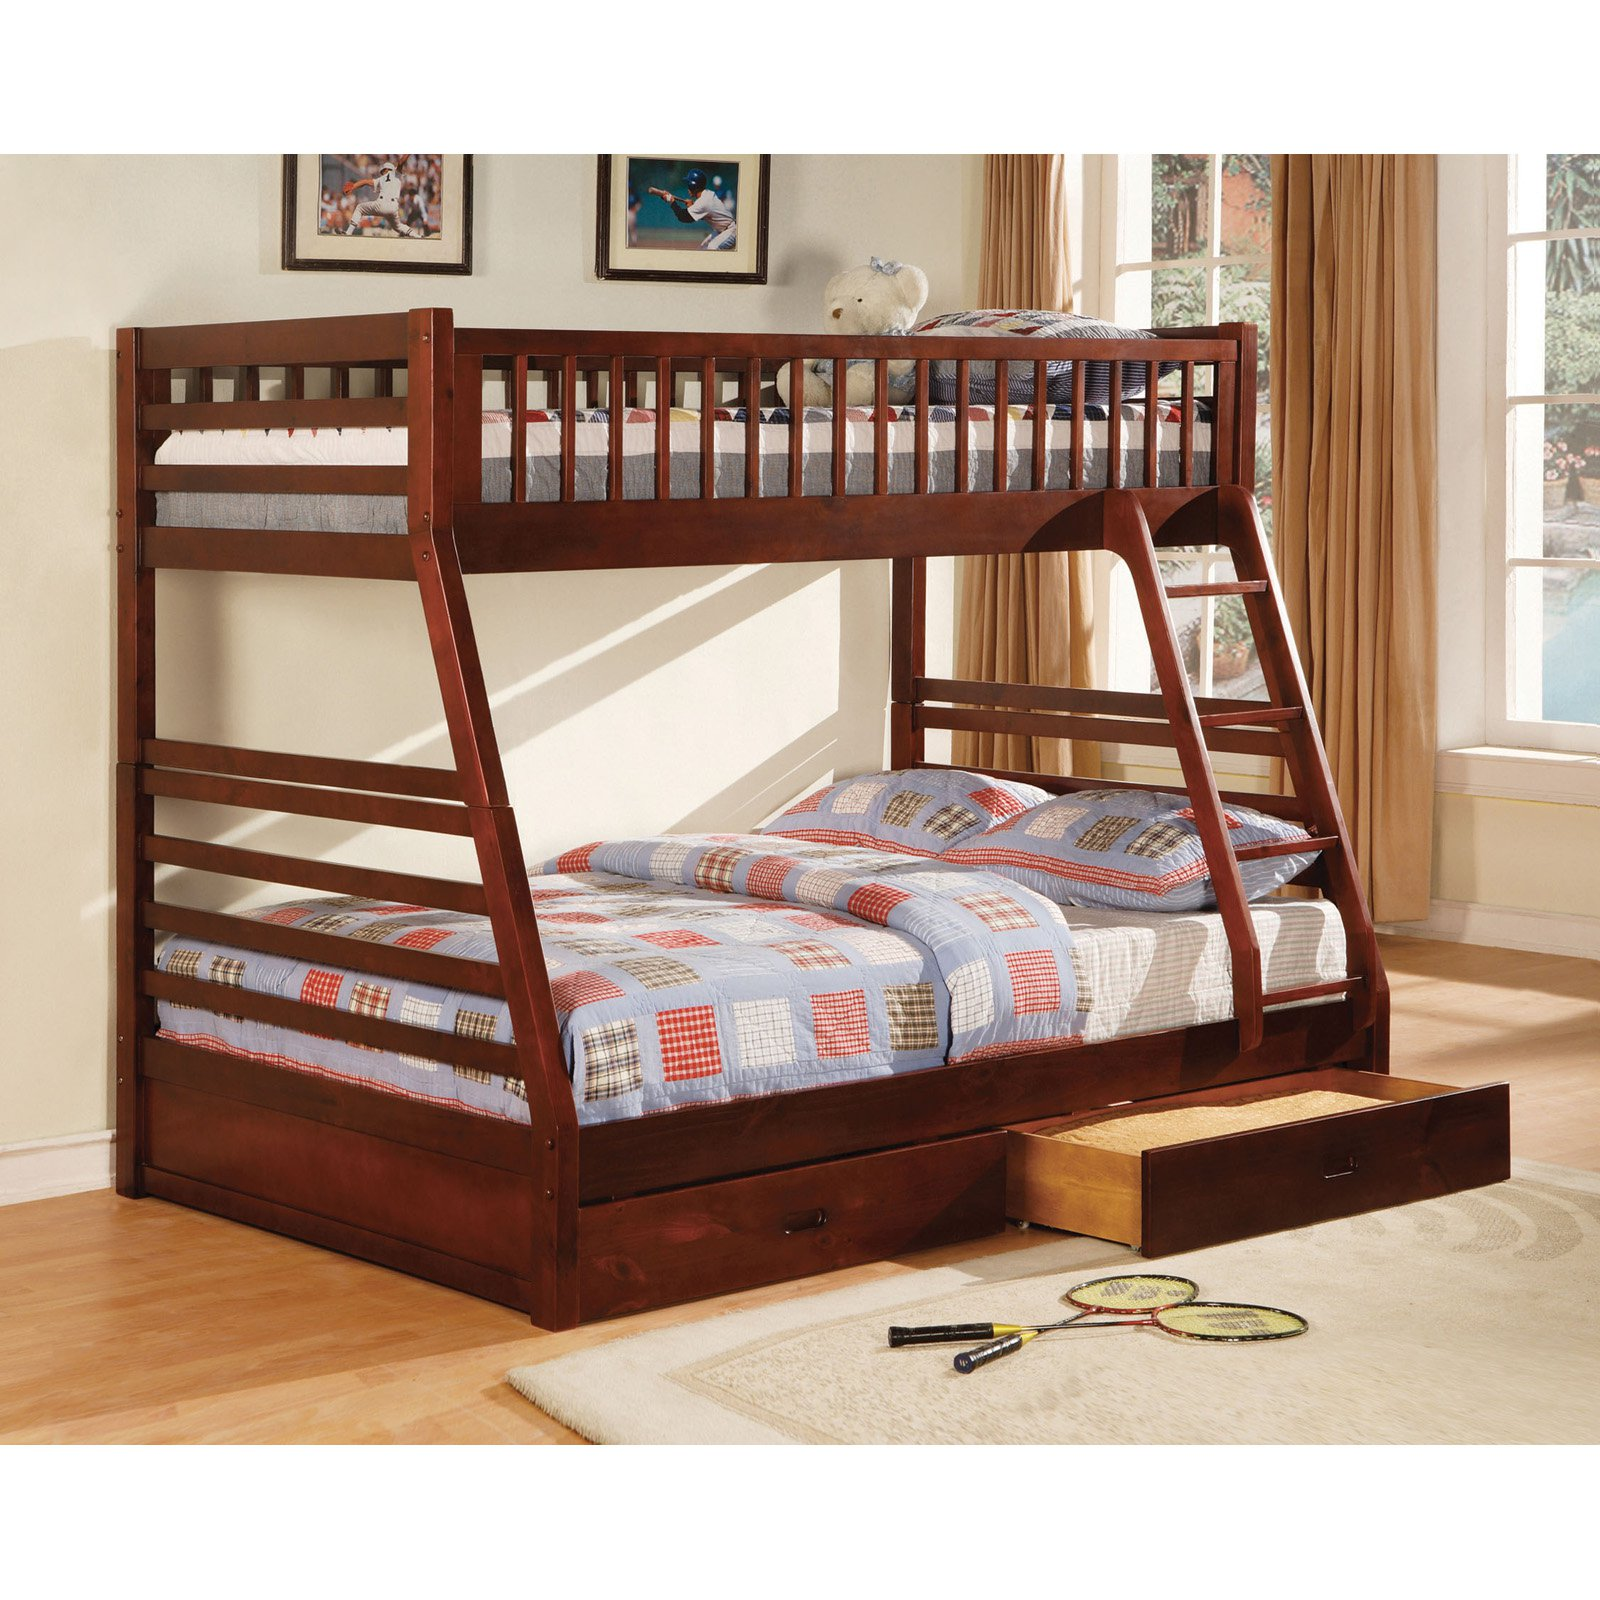 Furniture of America Twin over Full Bunk Bed with Storage